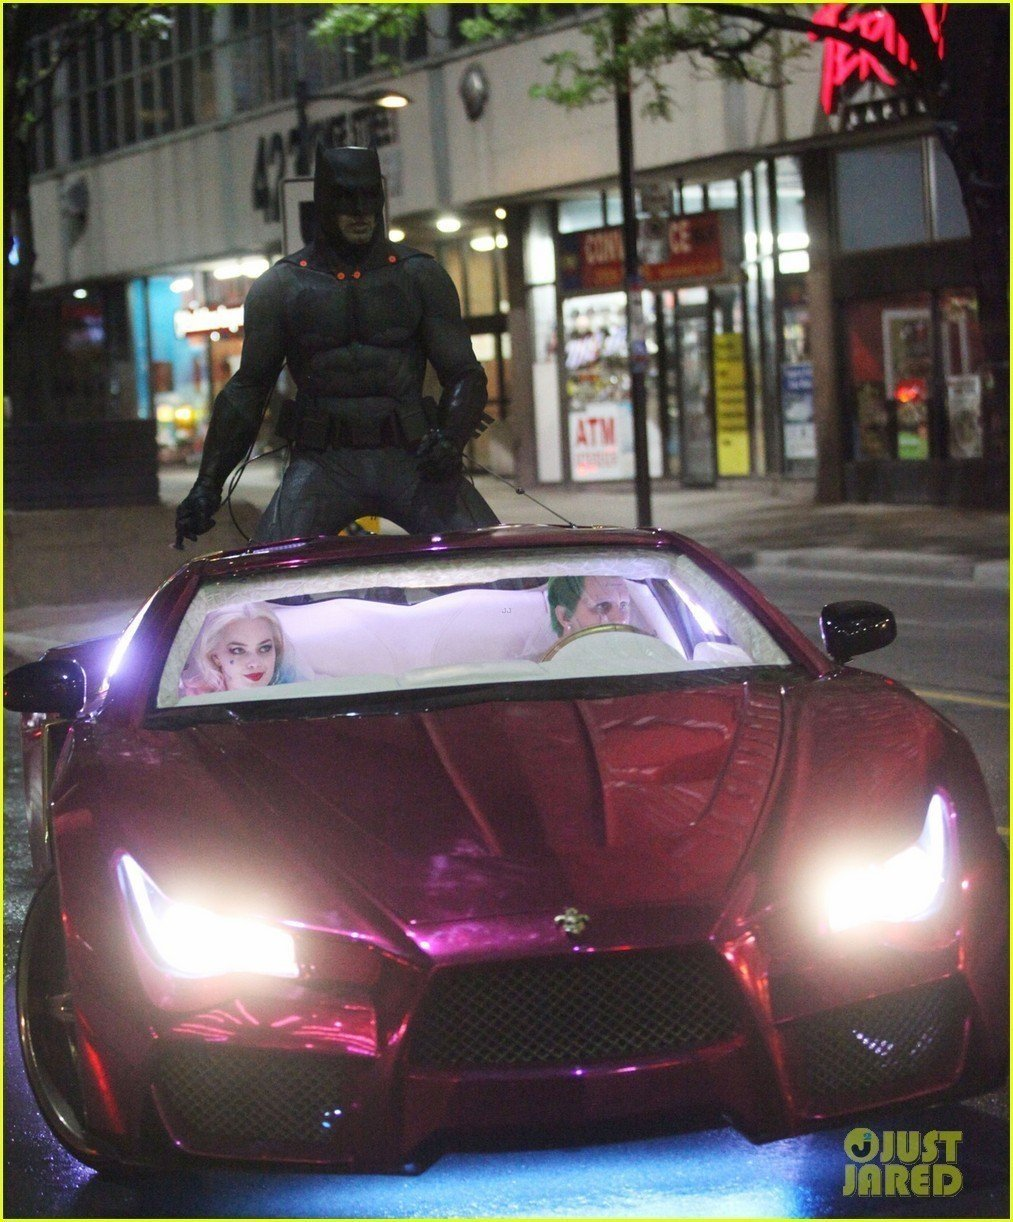 Margot Robbie, Jared Leto and Ben Affleck seen filming on set of Suicide Squad in Toronto